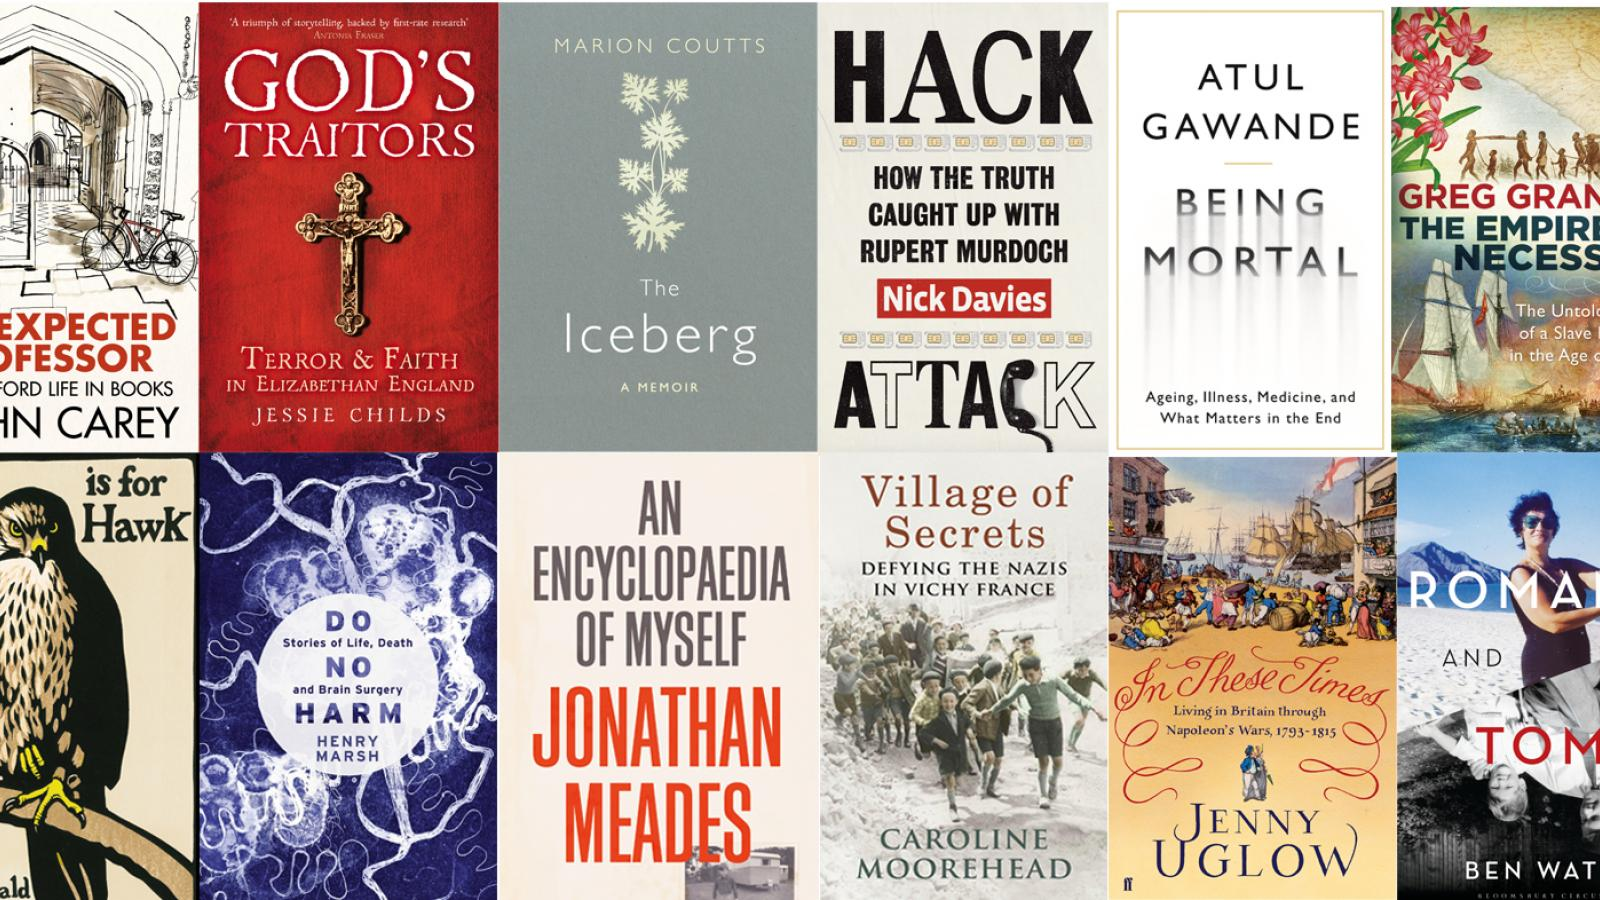 The Samuel Johnson Prize for Non-fiction 2014 longlist